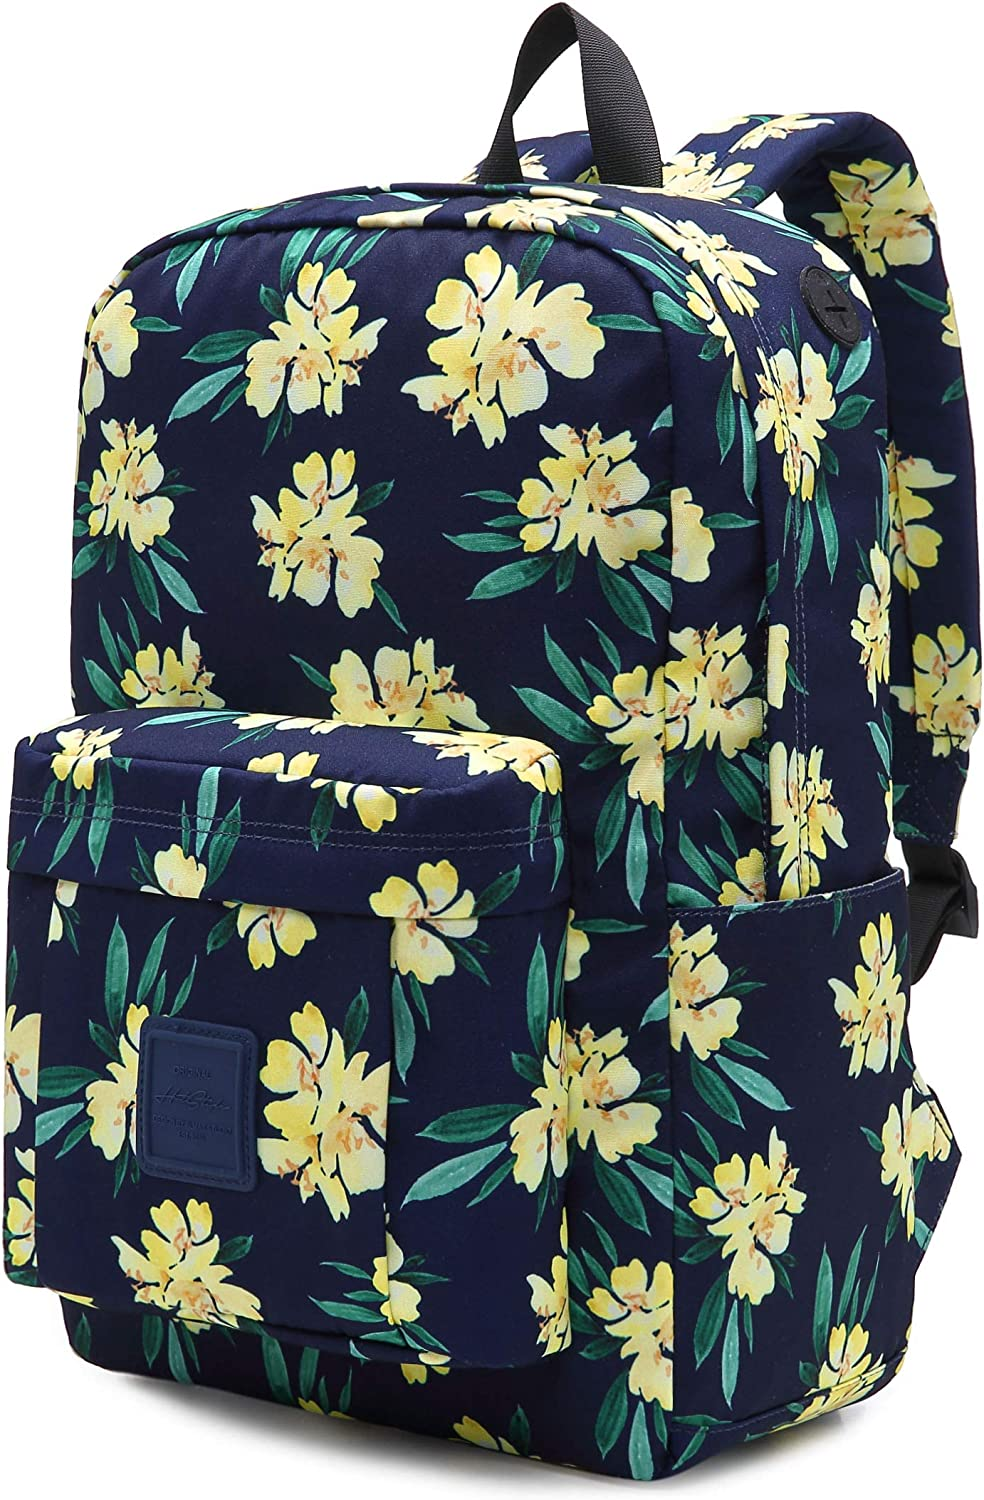 599s Floral School Backpack For Teen Girls, Water resistance & Durable Bookbag Cute for College, Winter Jasmine, Navy